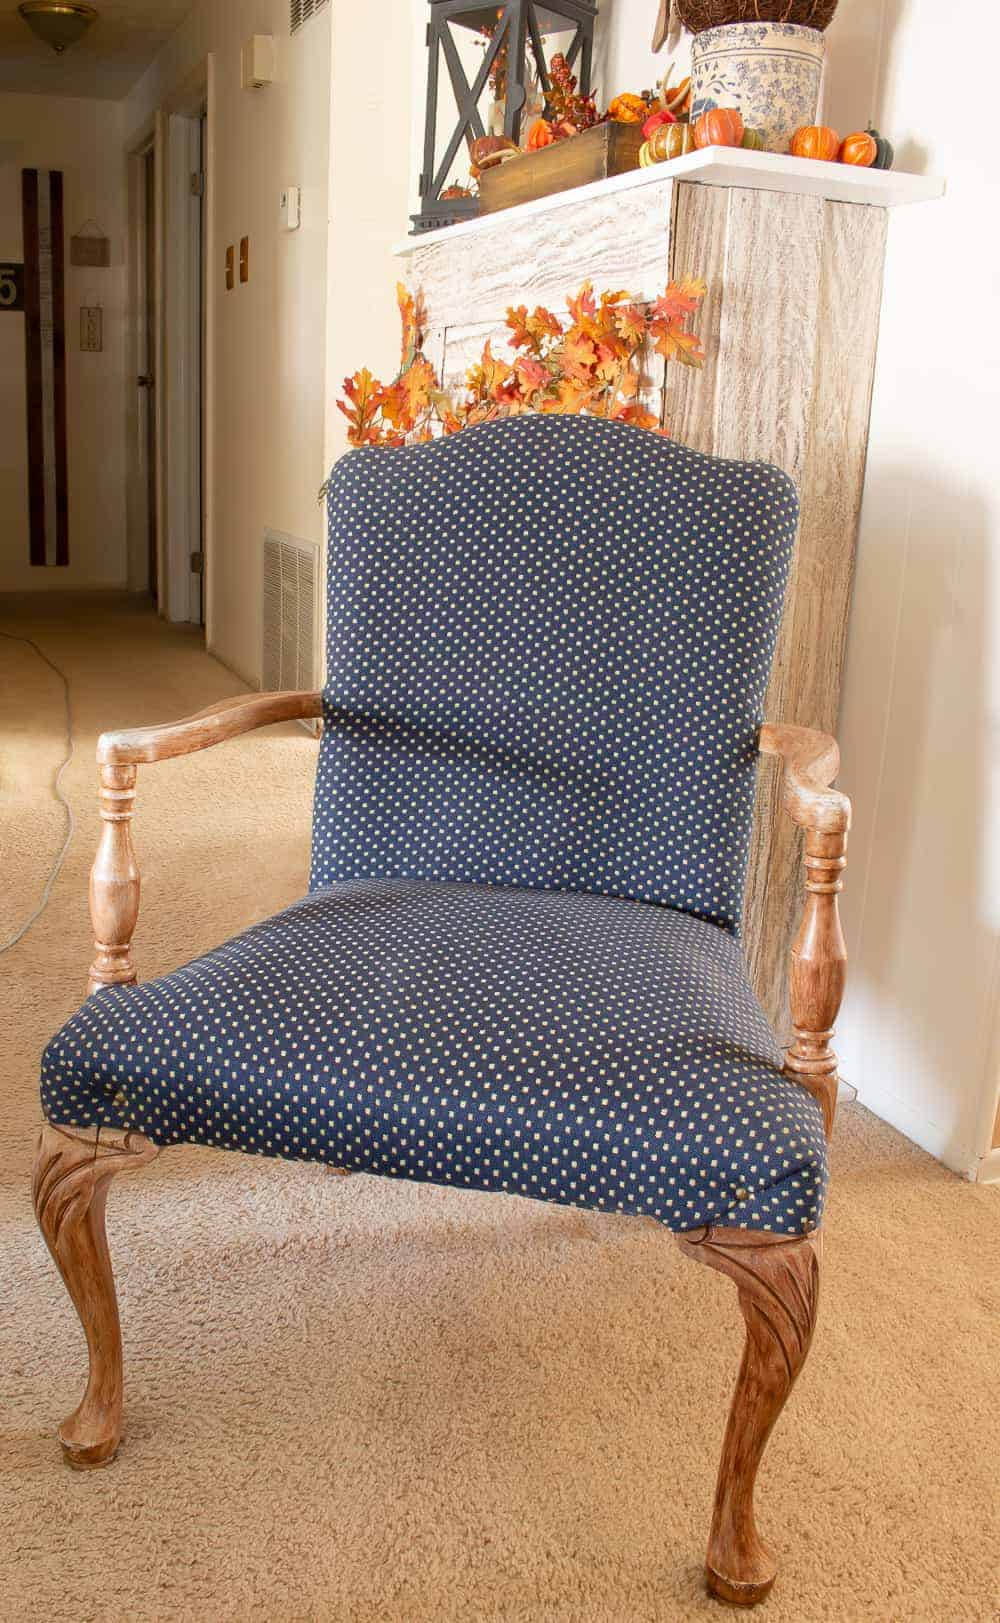 Antique chair with brown painted wood and blue and white fabric